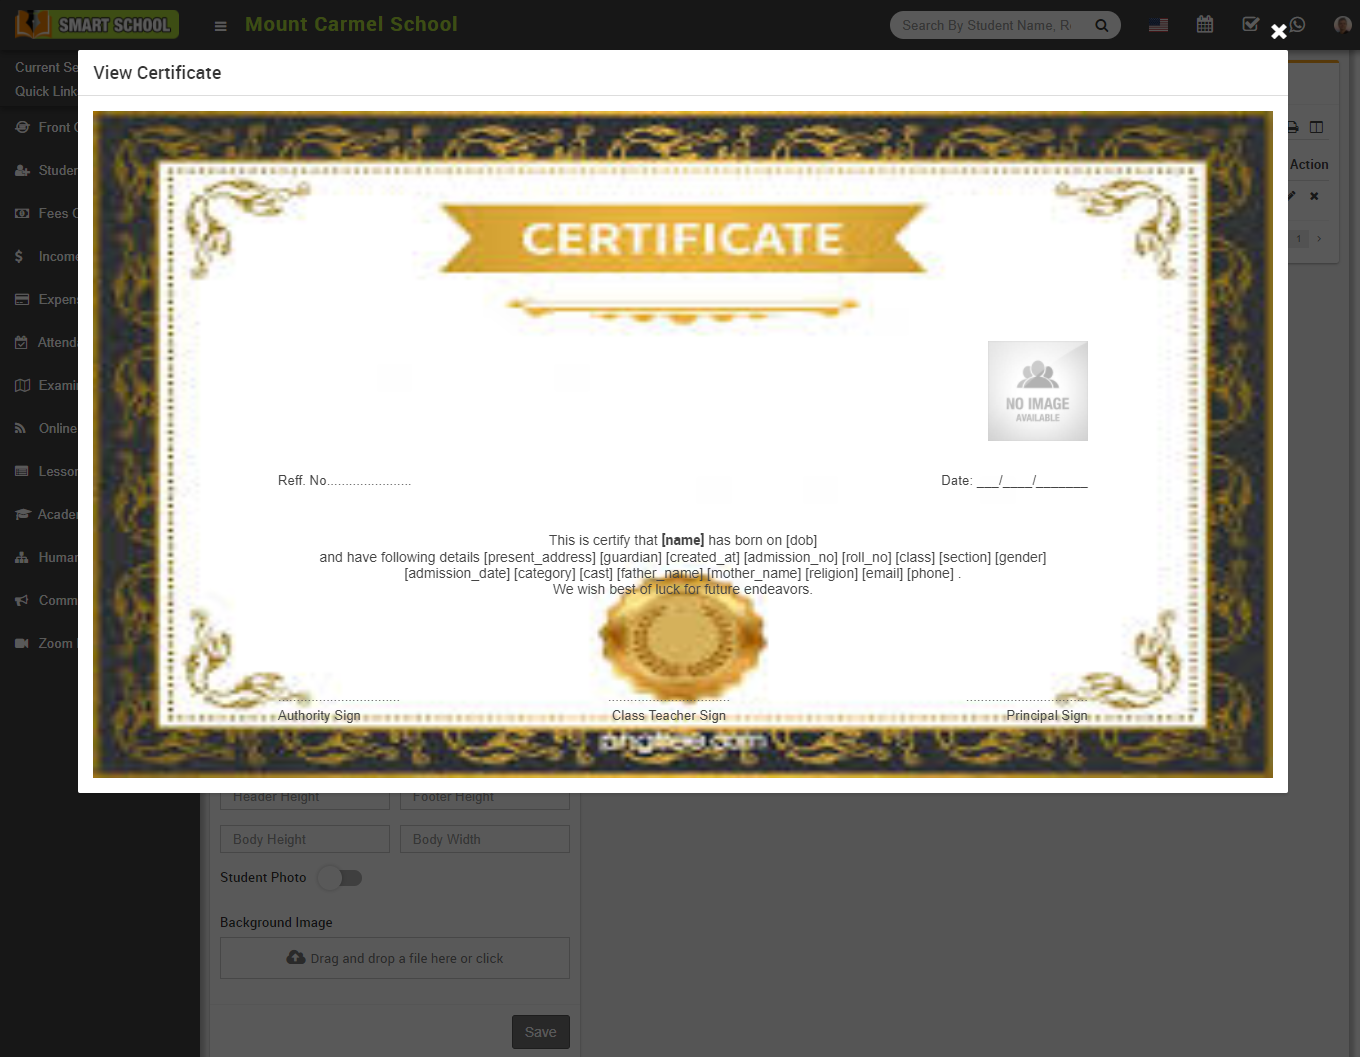 view student certificate image